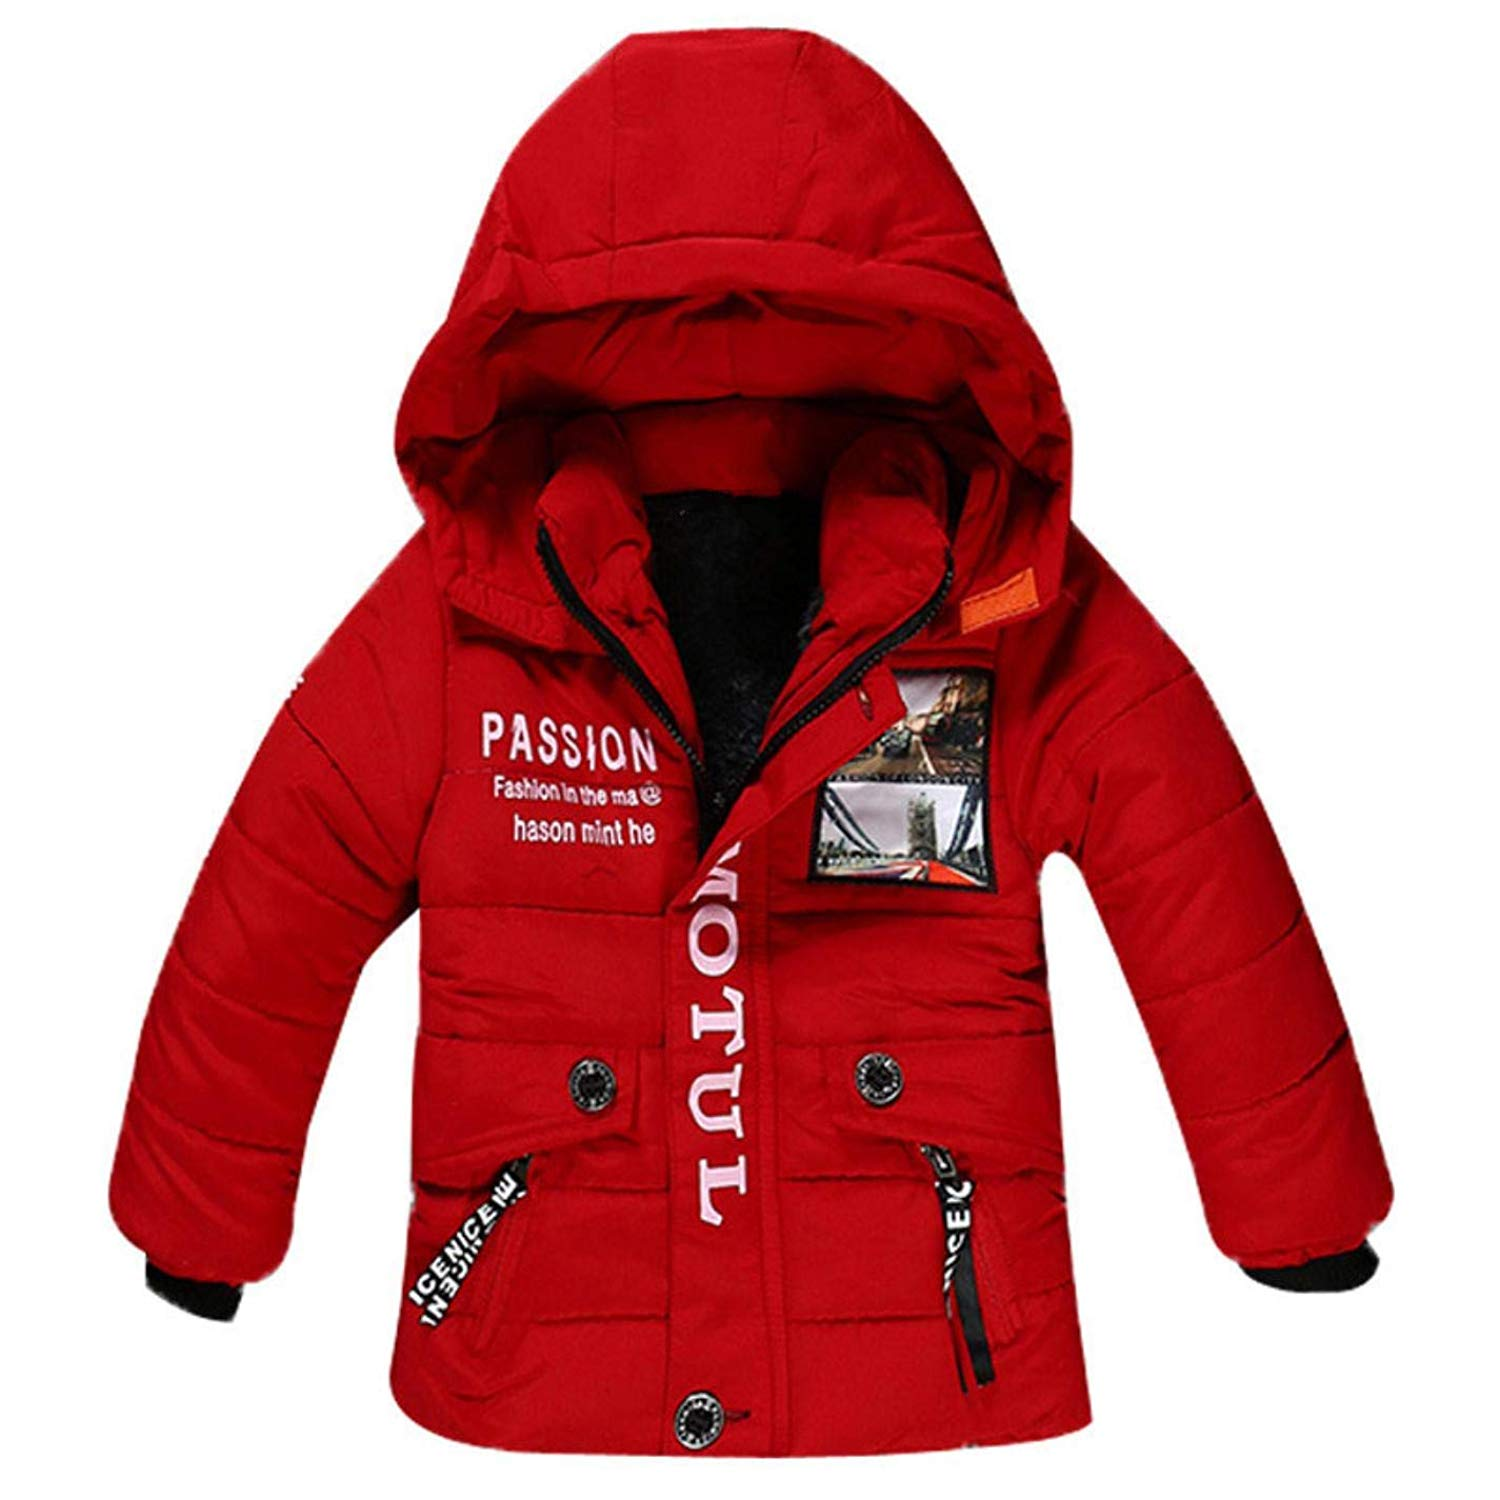 LzCxZDKN Boys Fur Hooded Warm Cotton Outerwear Coat Children Jacket Clothes